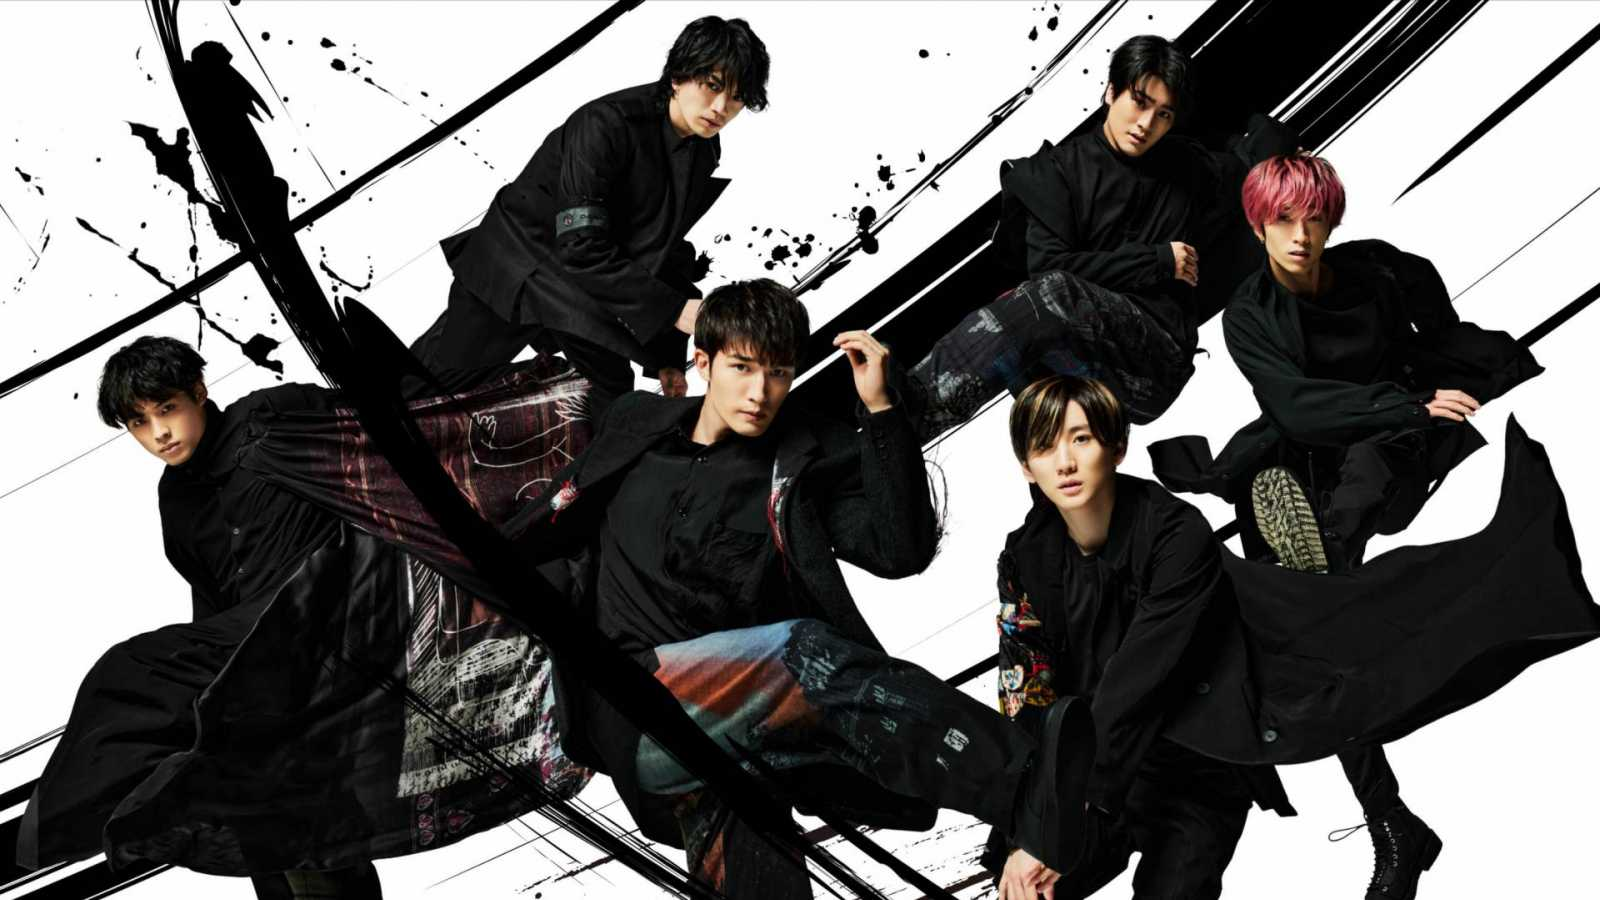 Neue Single von SixTONES © SixTONES. All rights reserved.